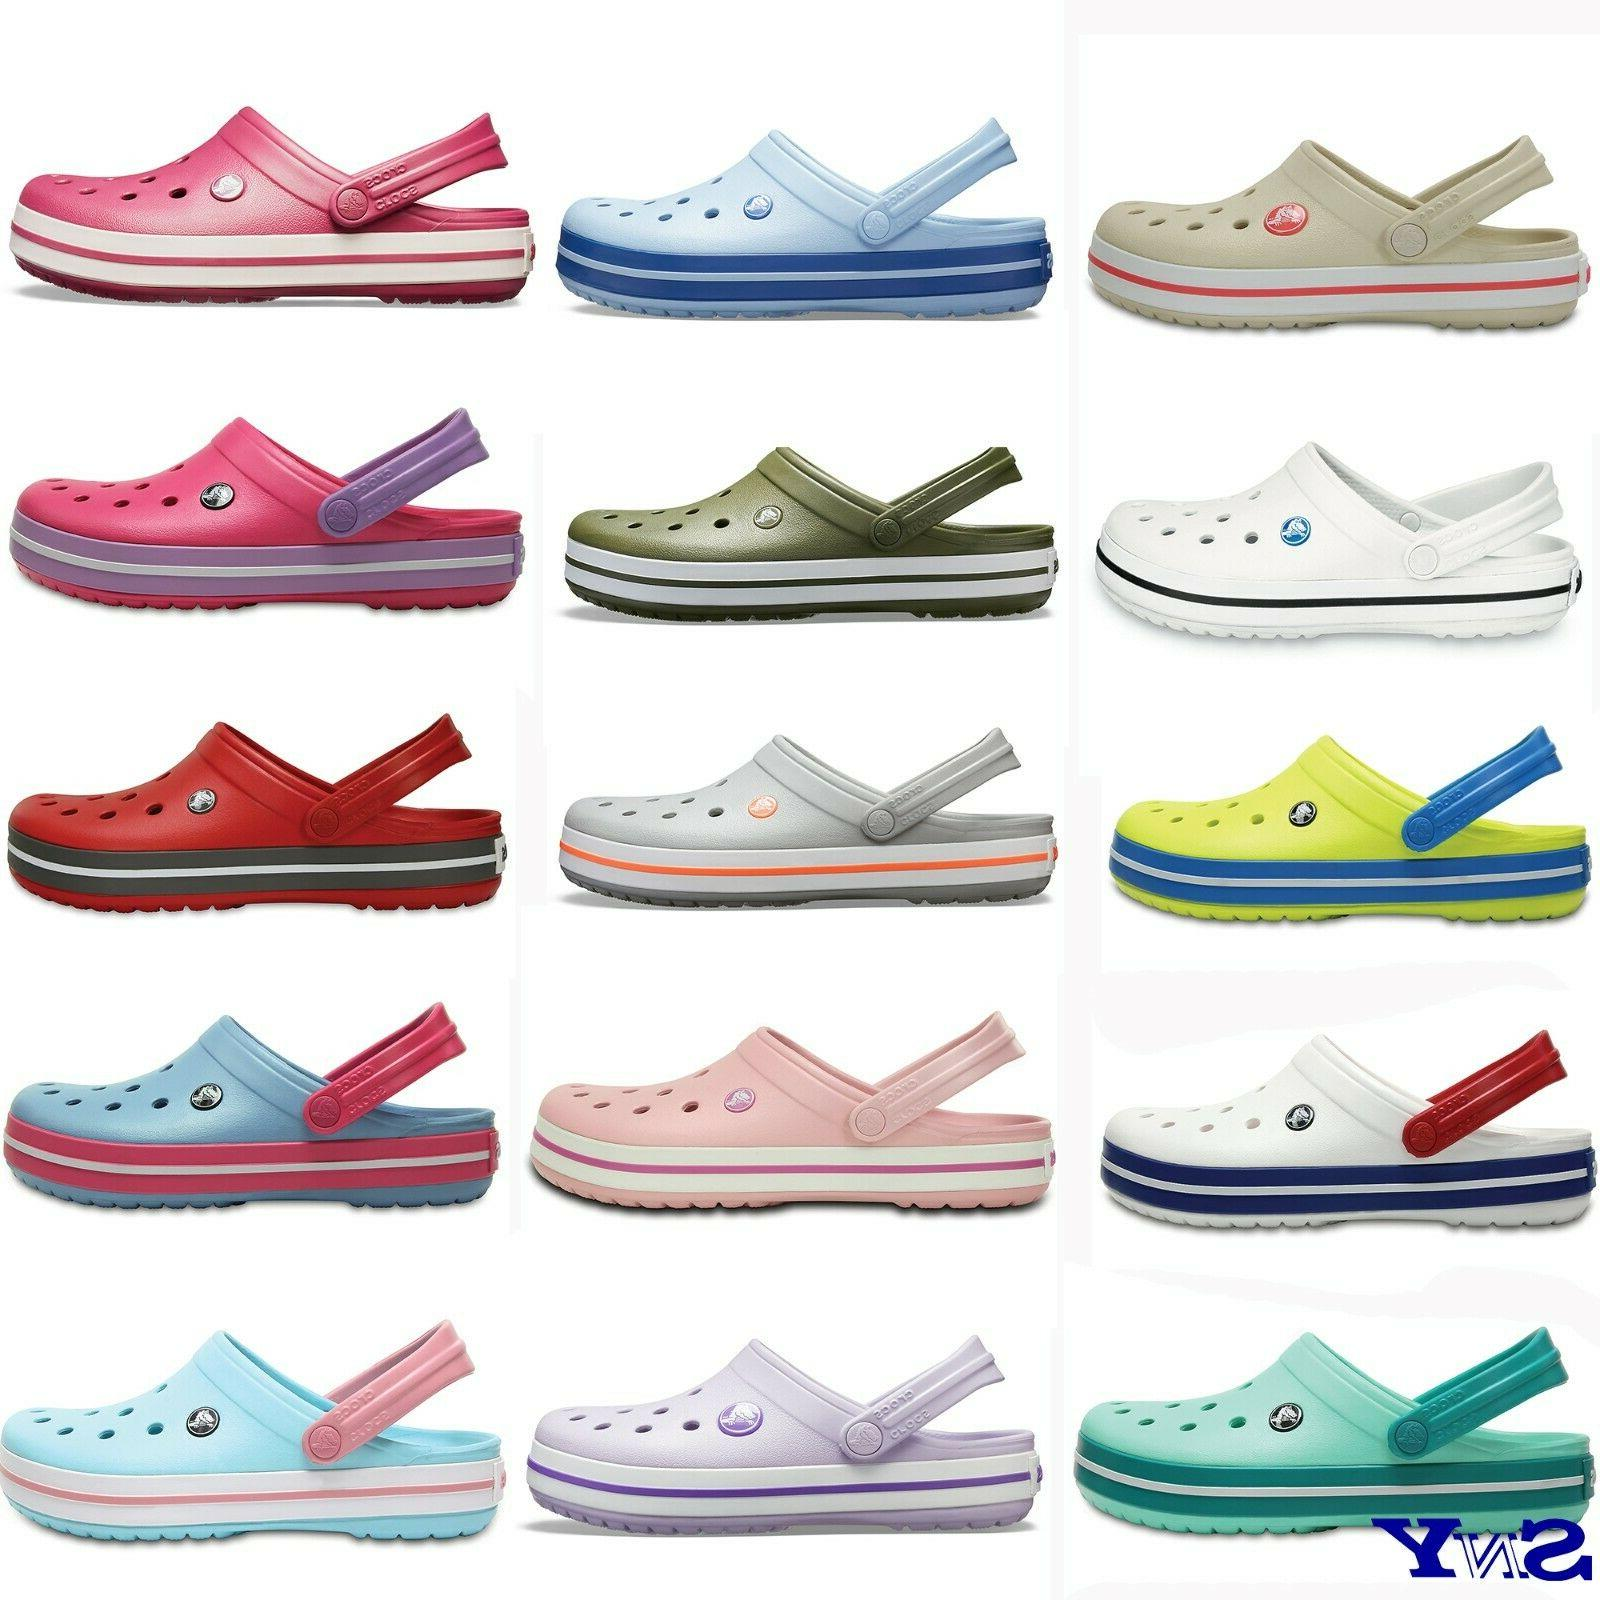 crocband classic comfort shoes water friendly women